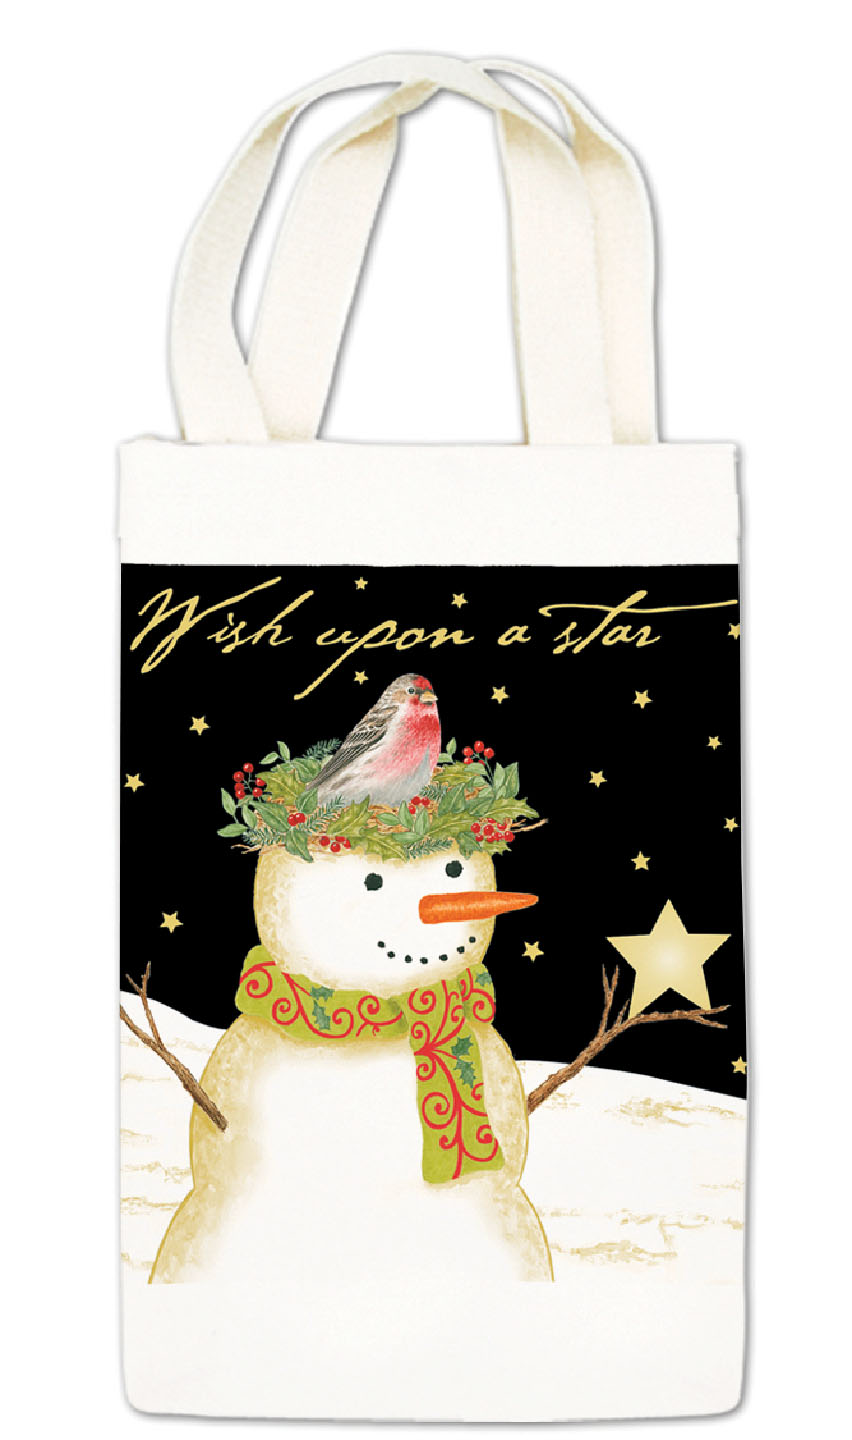 Wish Upon a Star Gourmet Gift Caddy